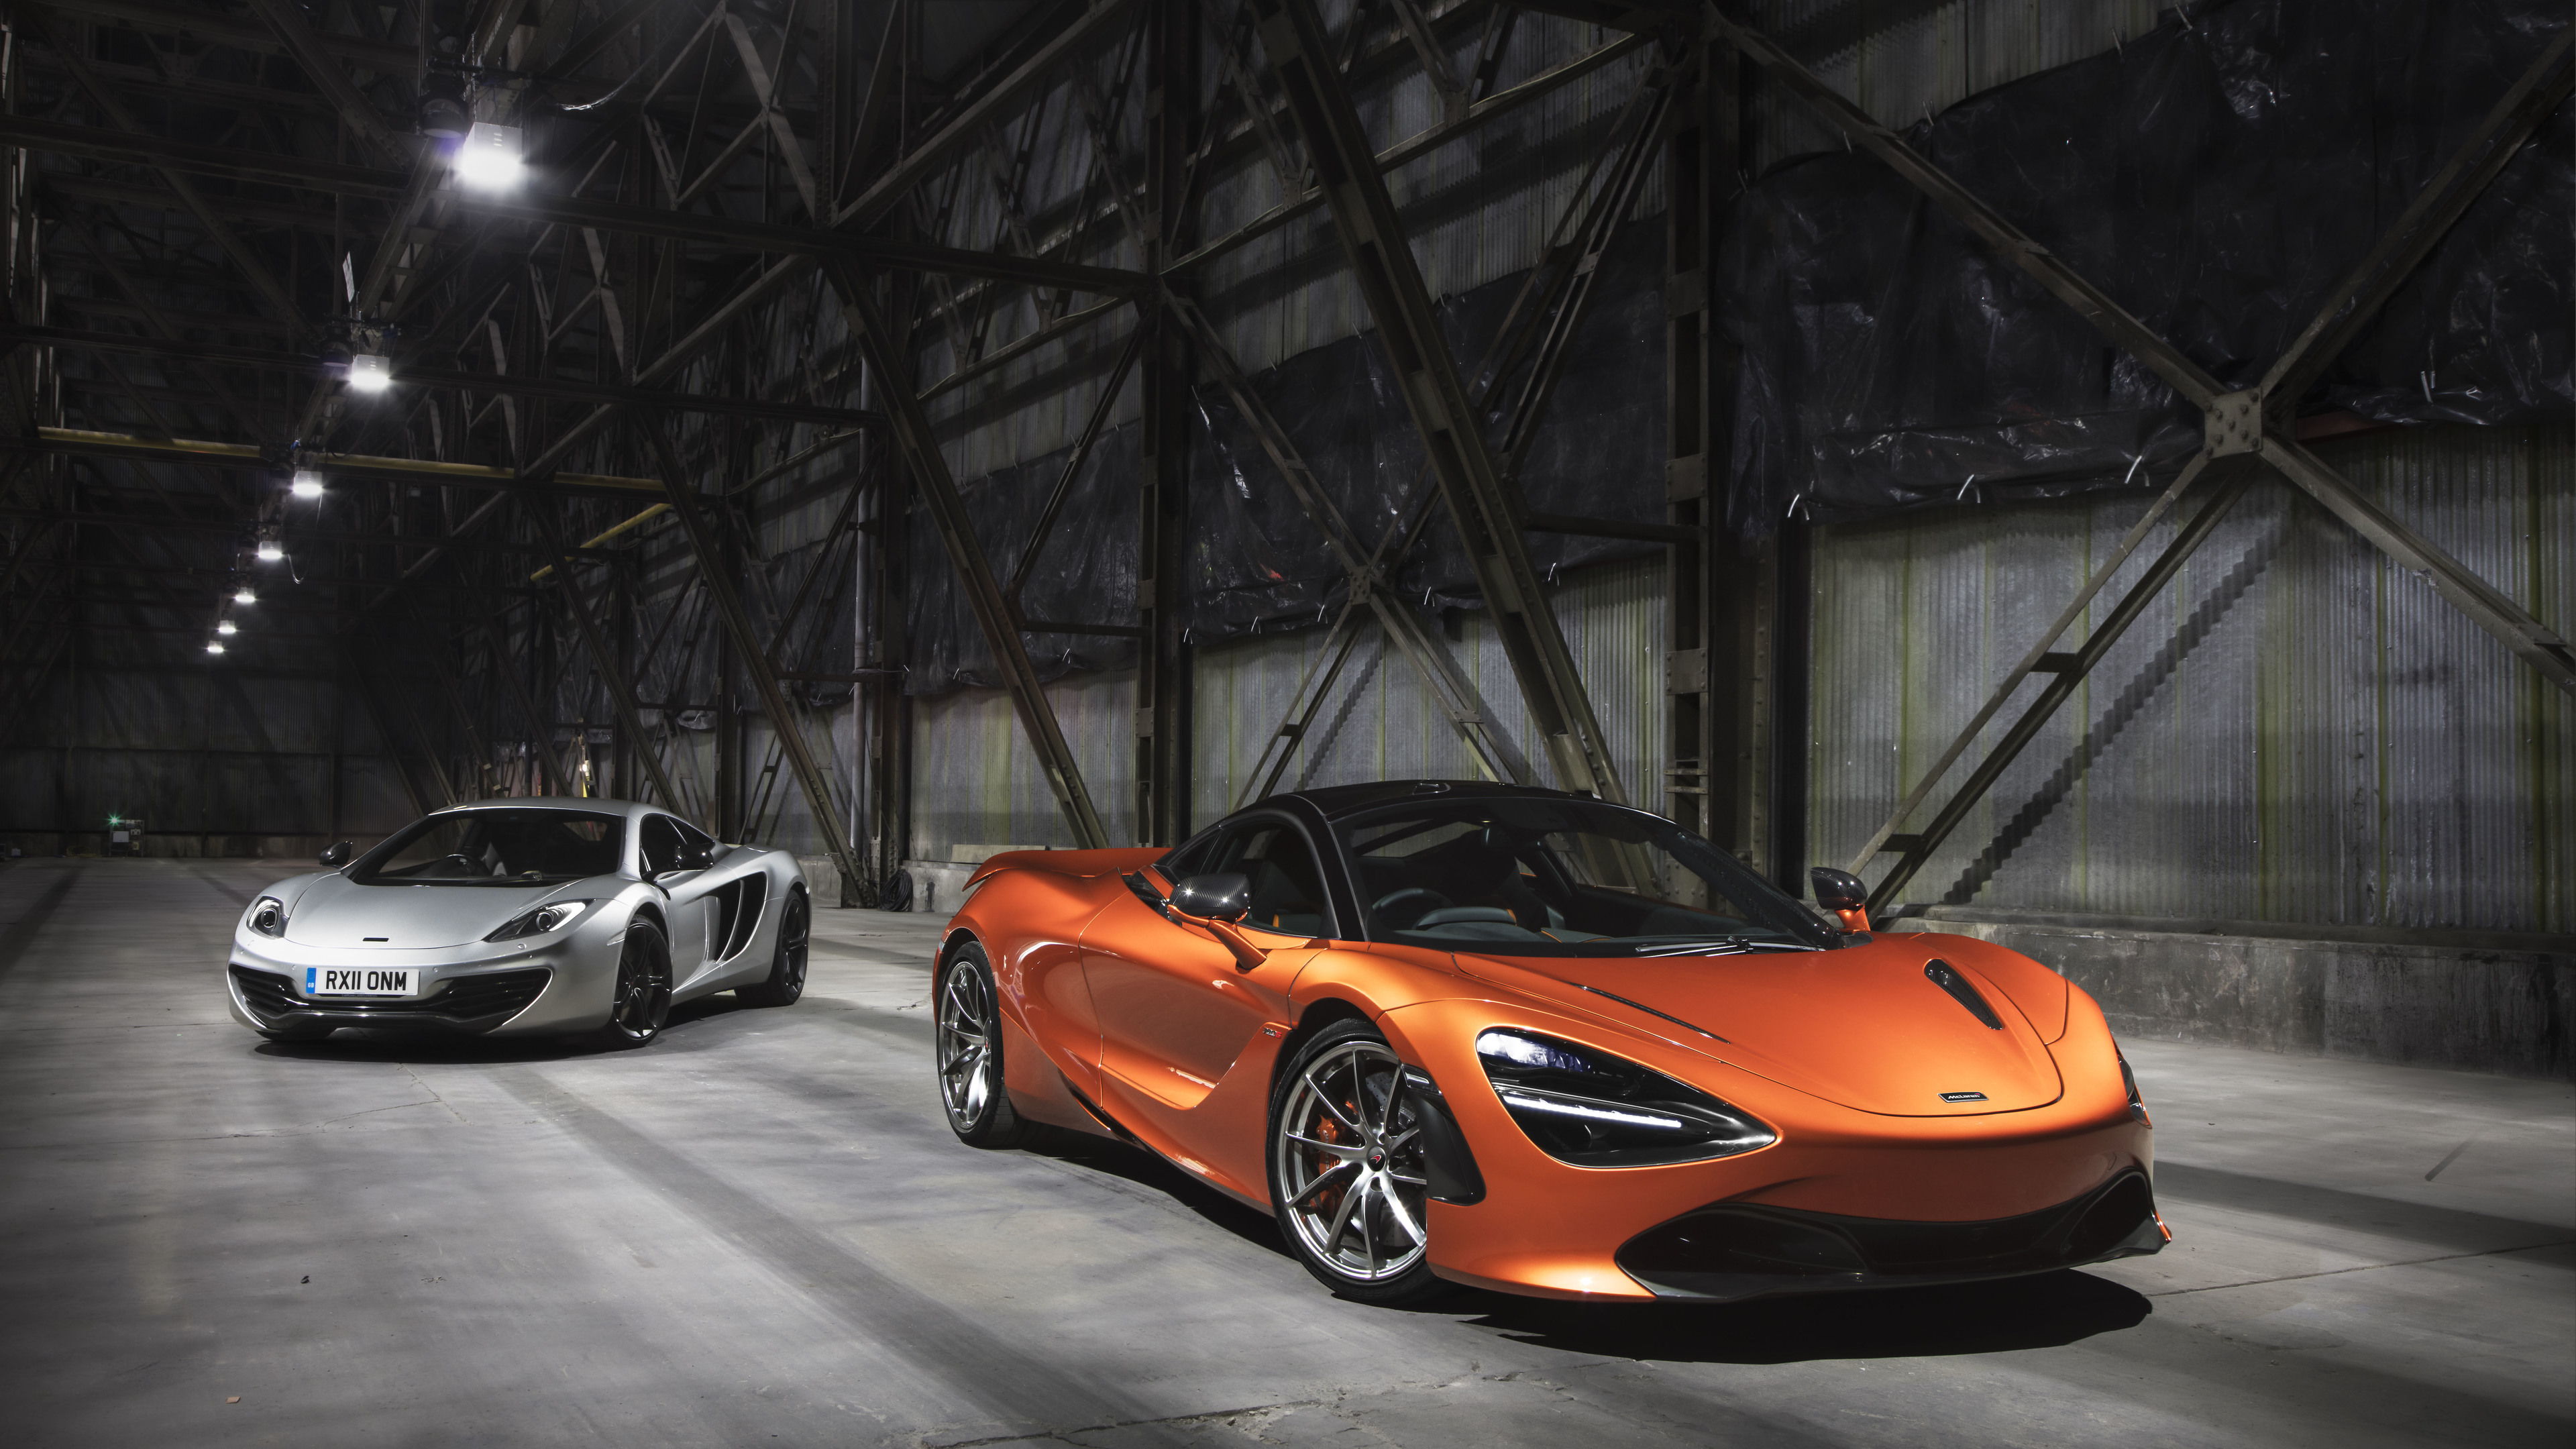 2018 mclaren 720s 8k 1539105148 - 2018 Mclaren 720S 8k - mclaren wallpapers, mclaren 720s wallpapers, hd-wallpapers, cars wallpapers, 8k wallpapers, 4k-wallpapers, 2018 cars wallpapers